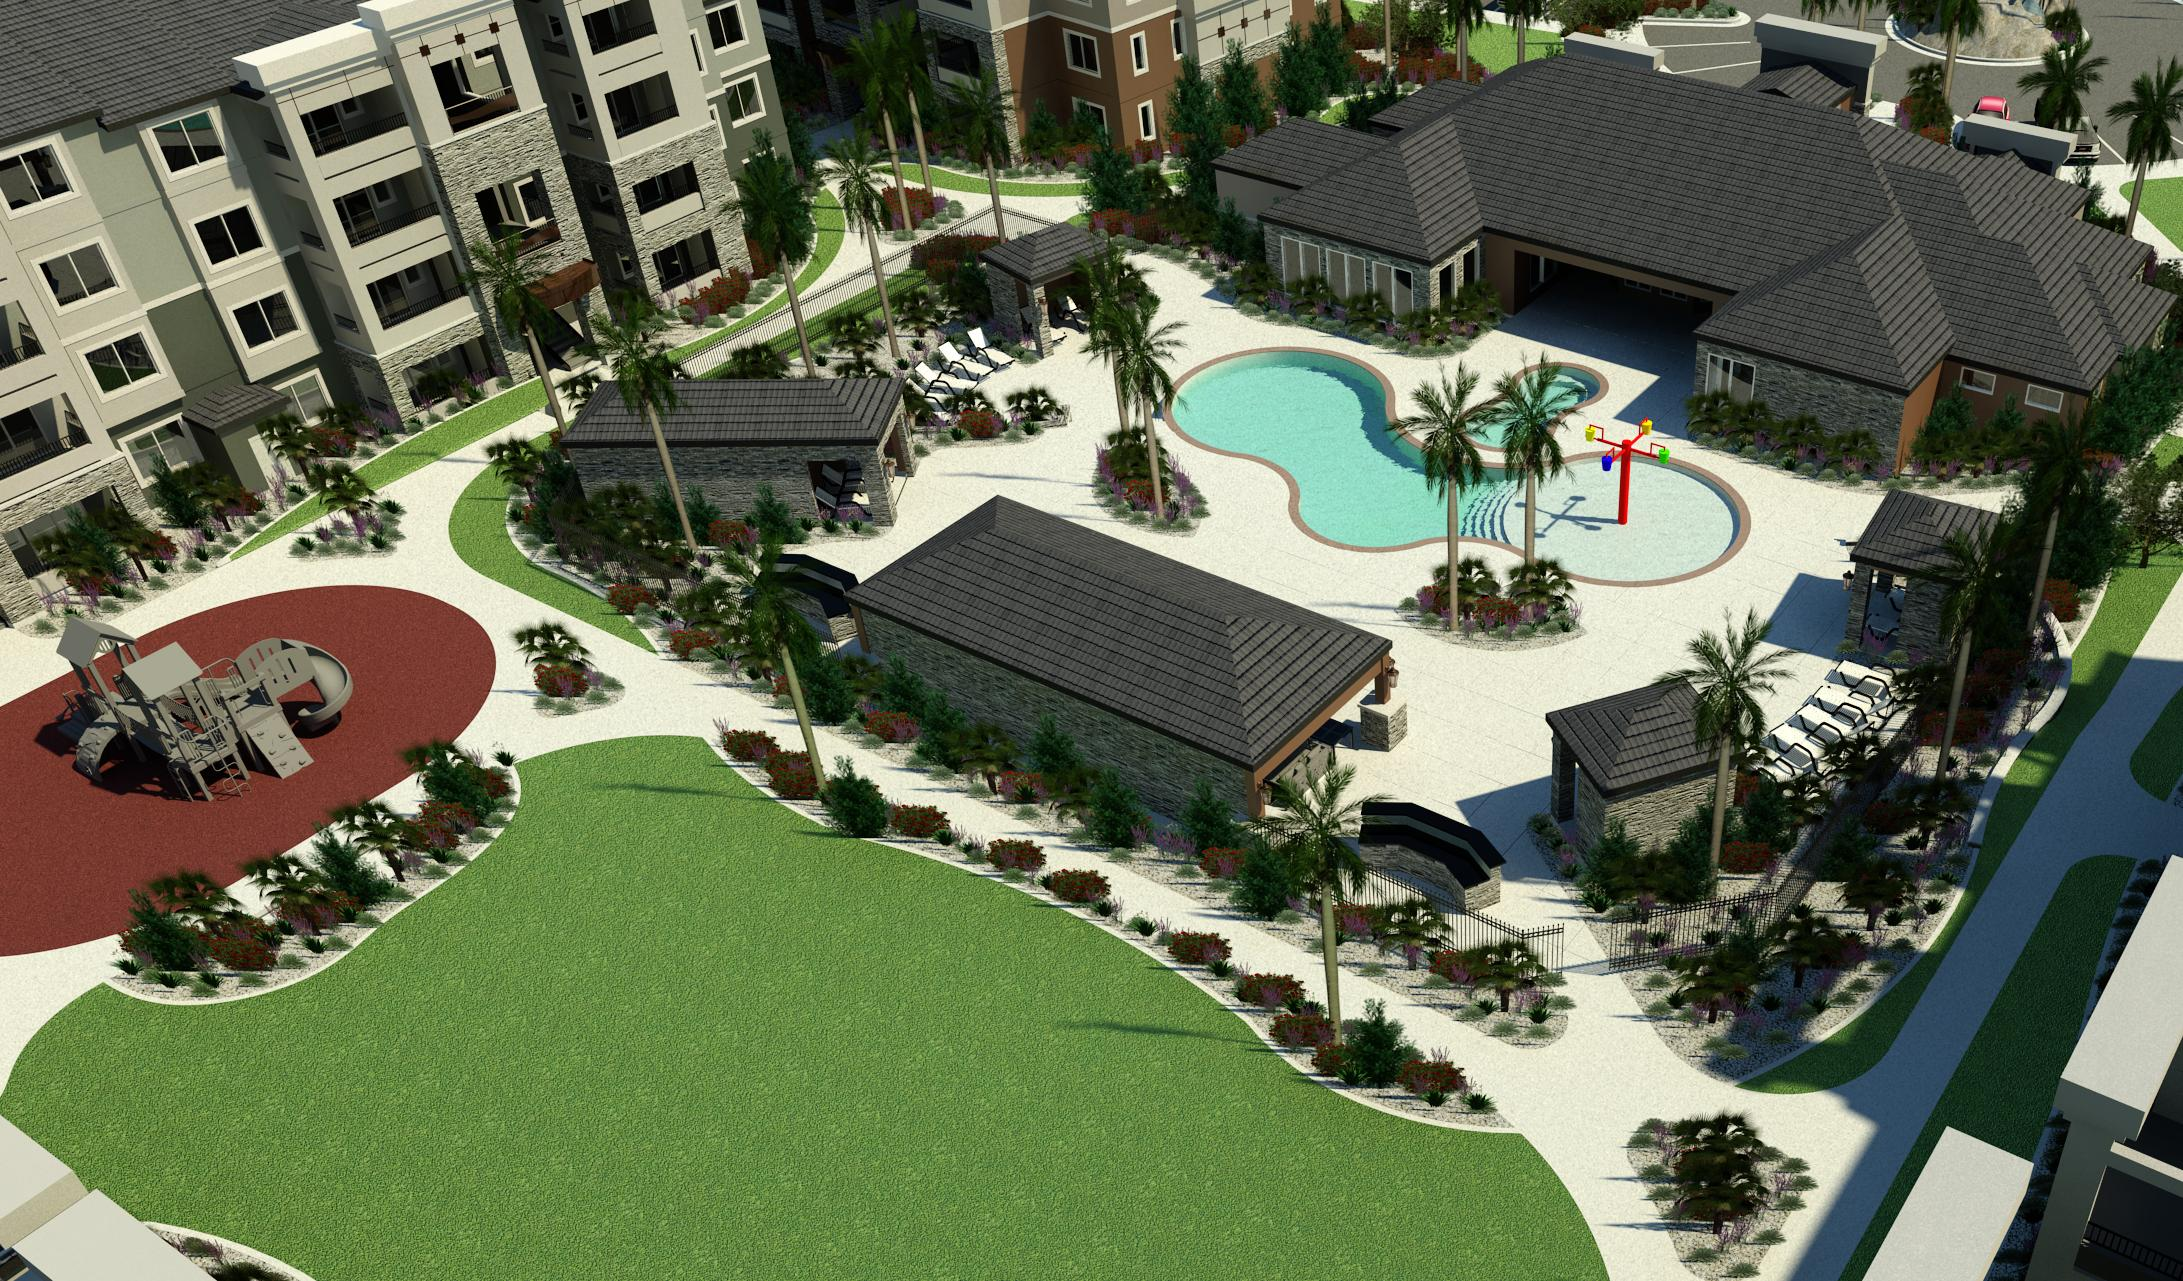 Land sale finalized for massive luxury apartment complex at